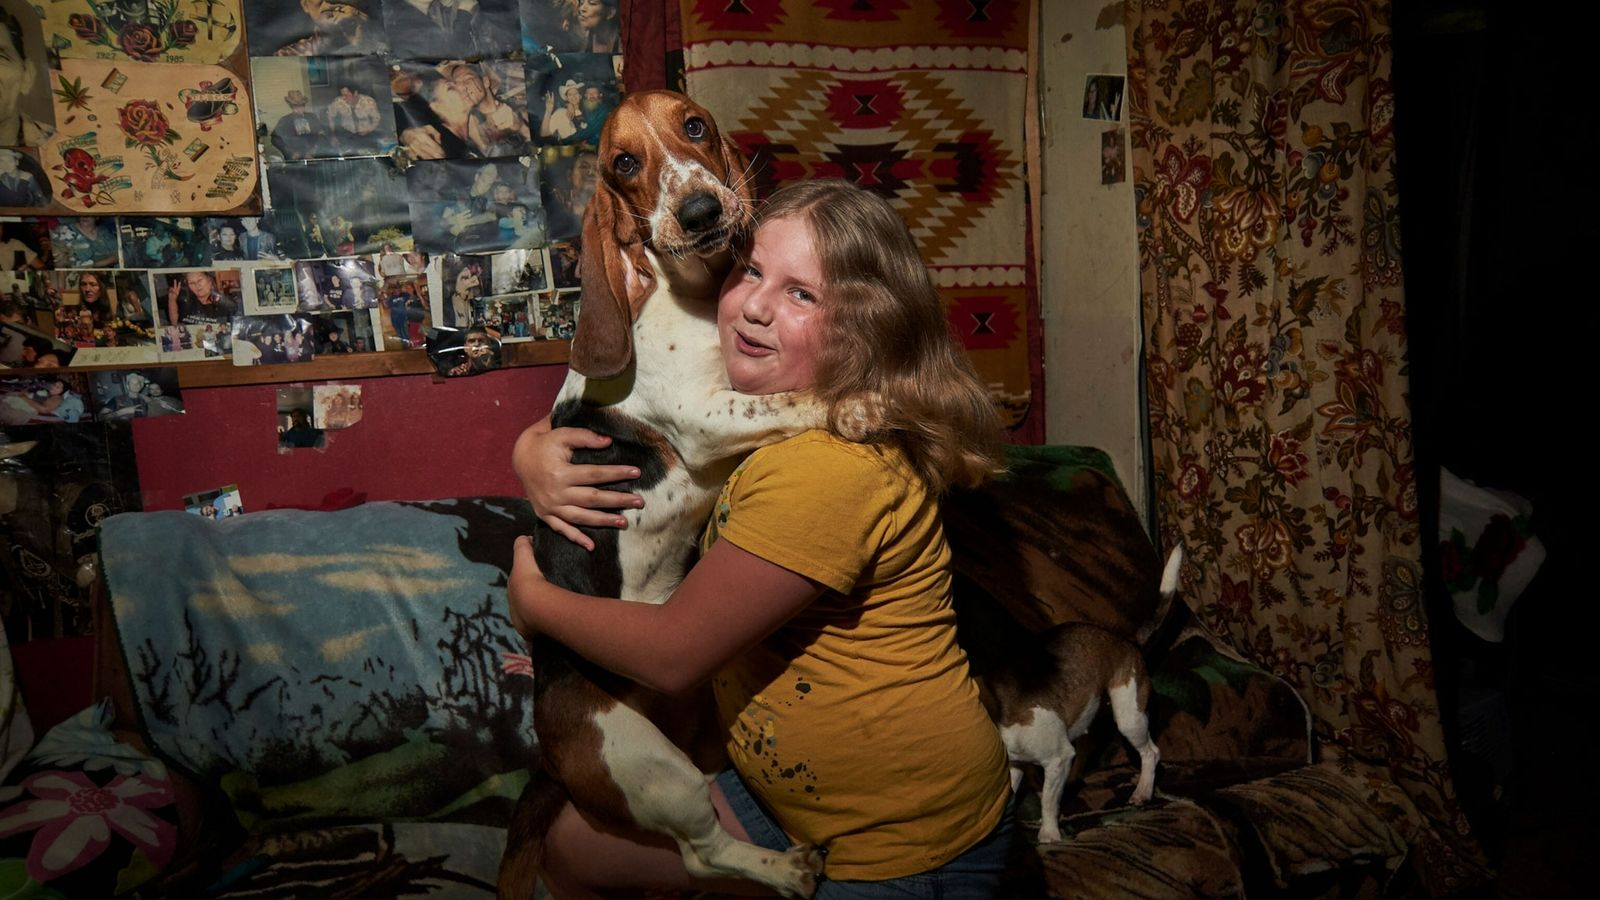 A girl and her dog in Boone County, West Virginia.